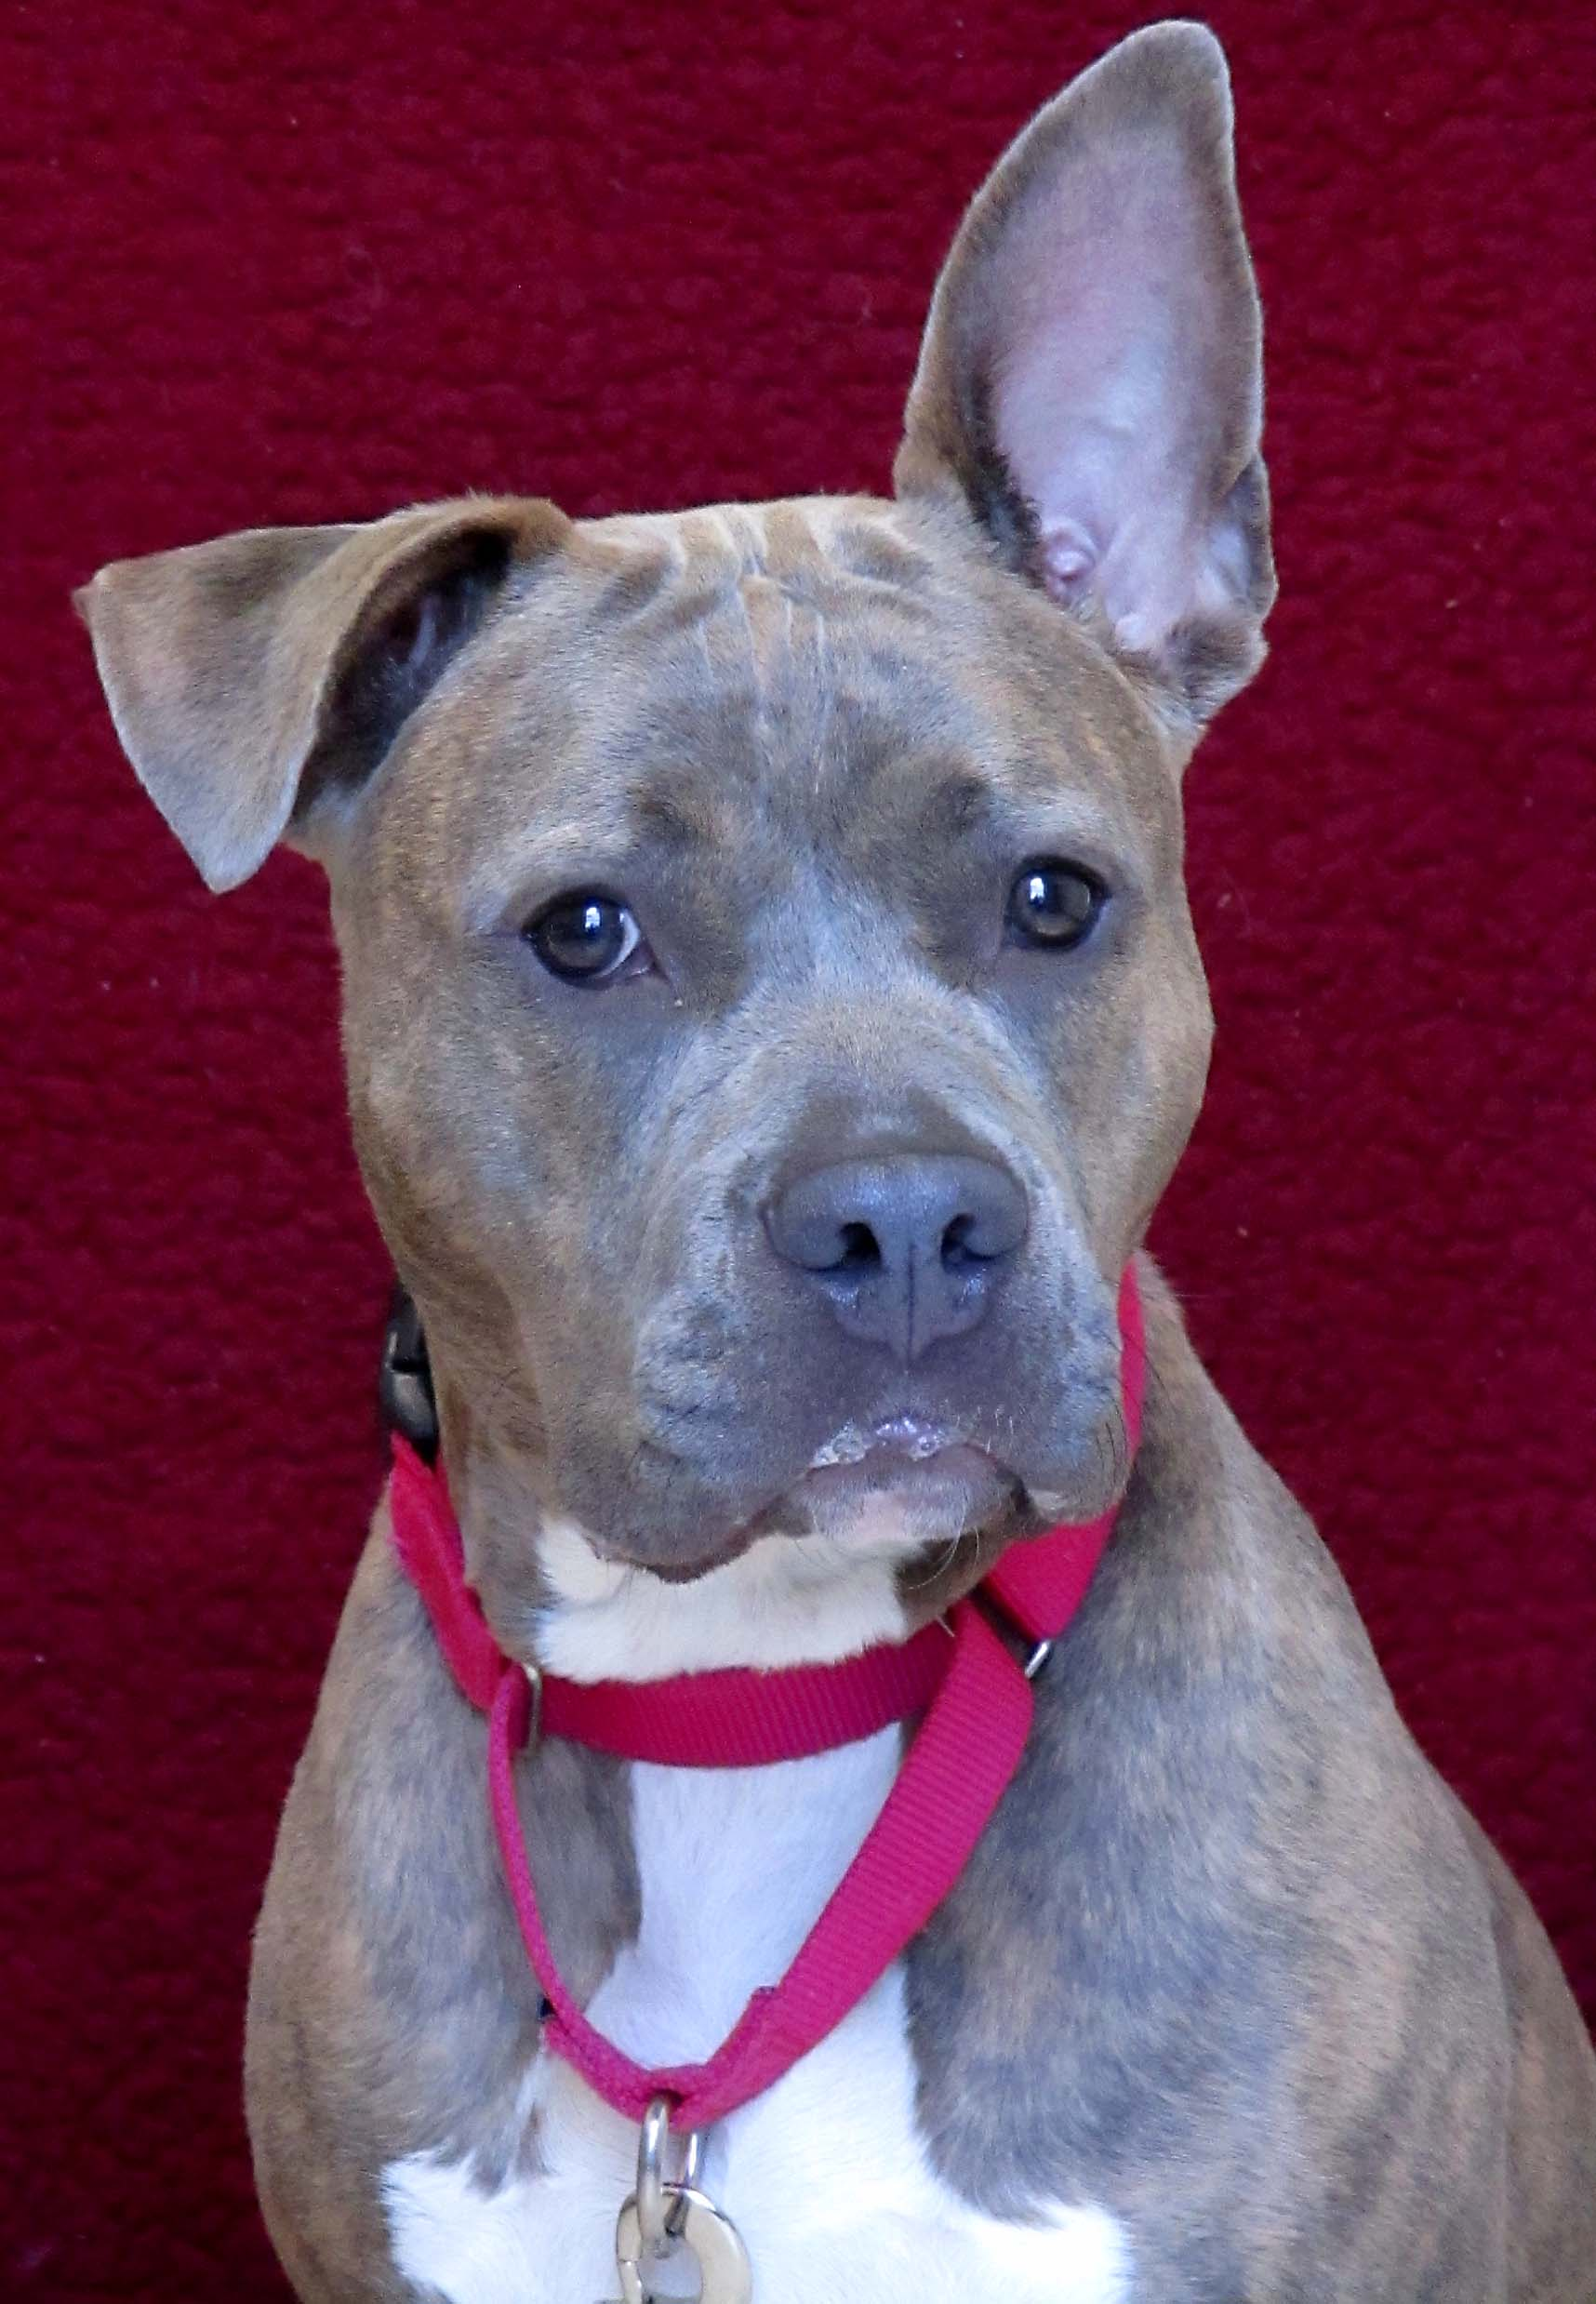 Samantha the 11-month-old Pit Bull Terrier was displaced when her human owners stopped getting along. She is quite playful and engages with people nicely!Samantha would do best in a home where she is the only pet as she doesn't get along with many dogs.